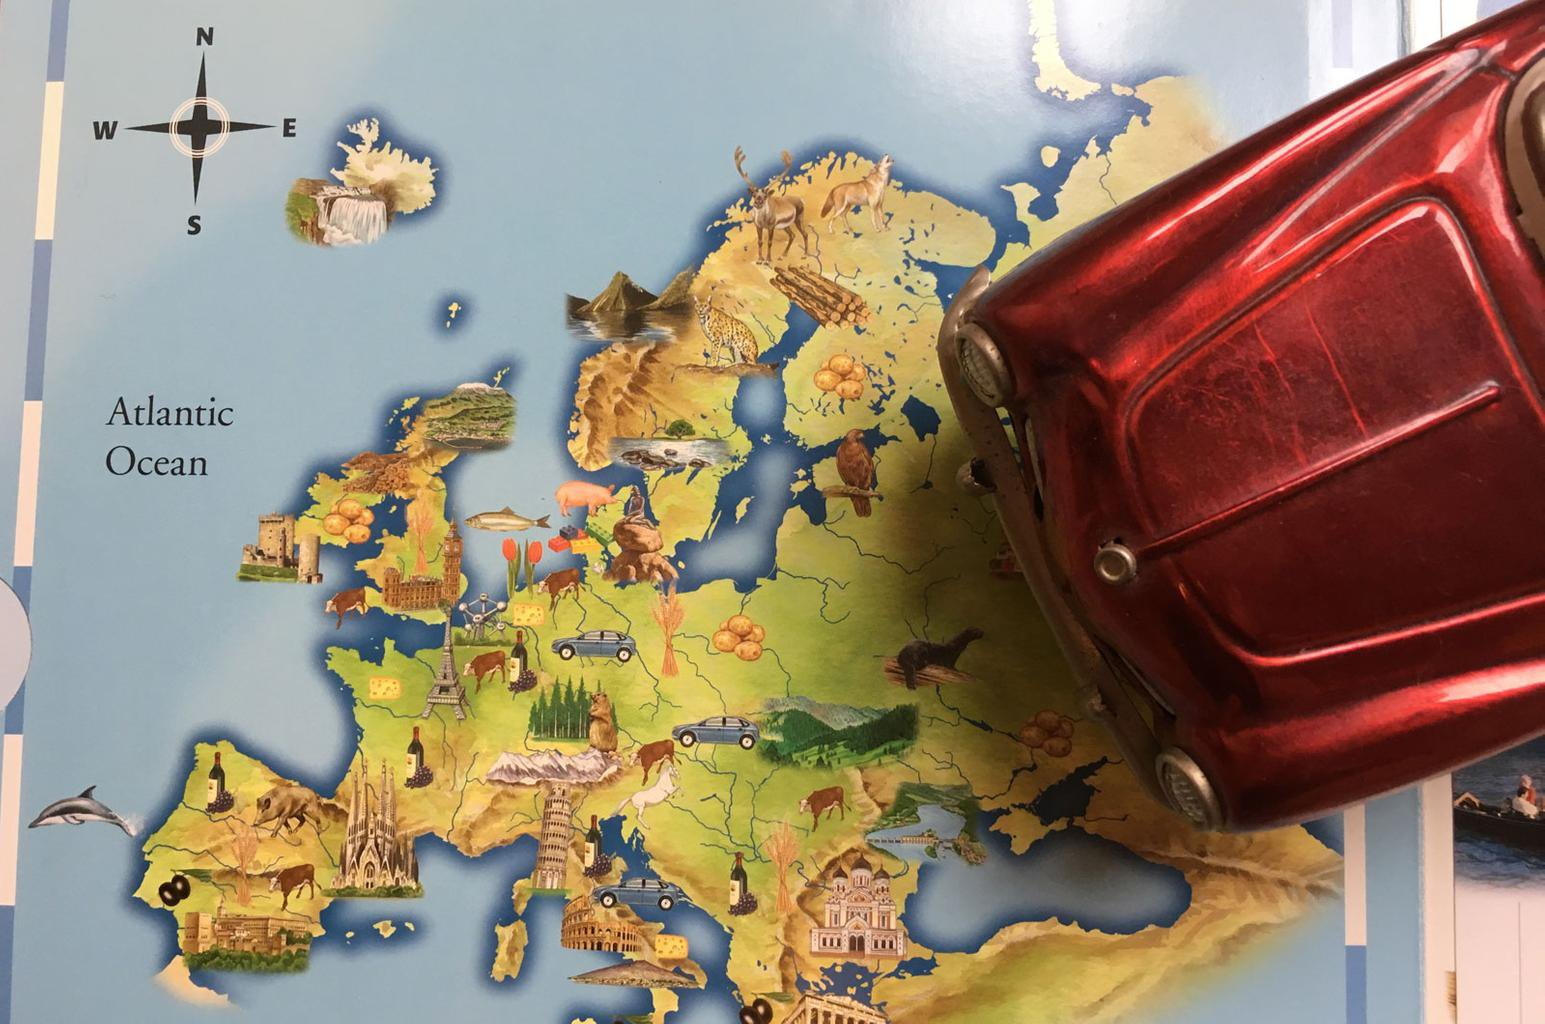 Toy car on Europe map